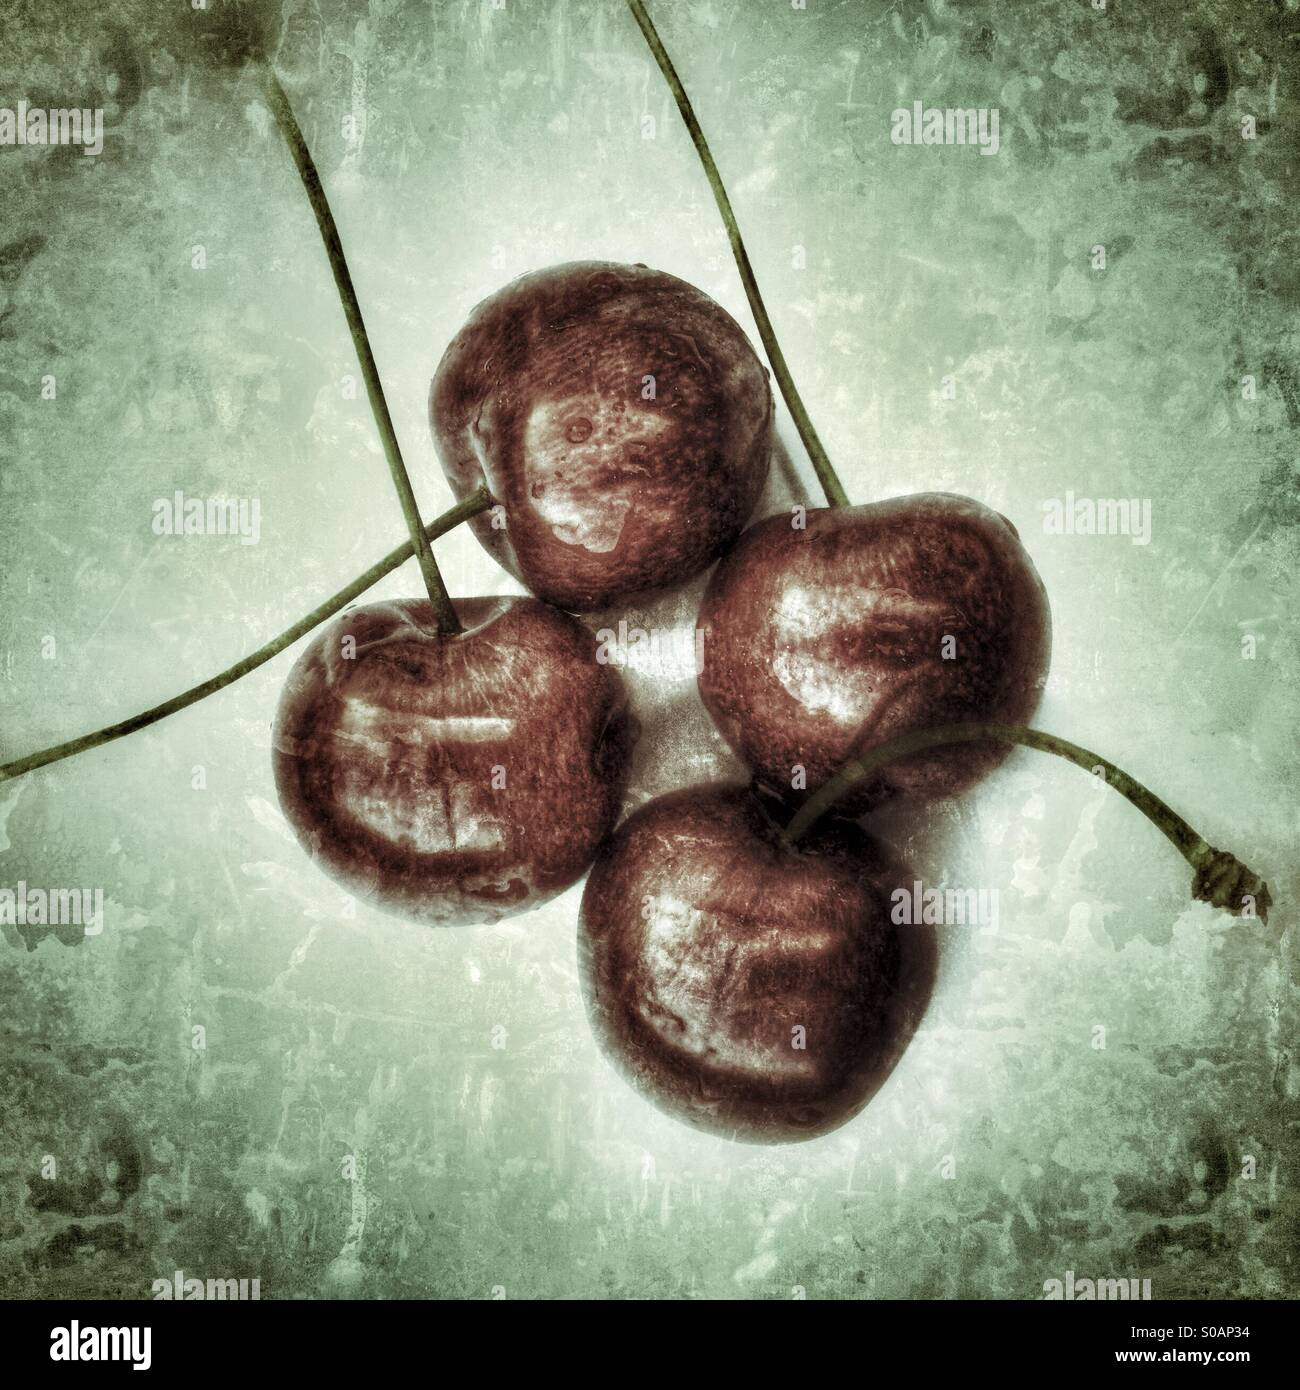 Dramatic images showing four cherries on a plain background - Stock Image